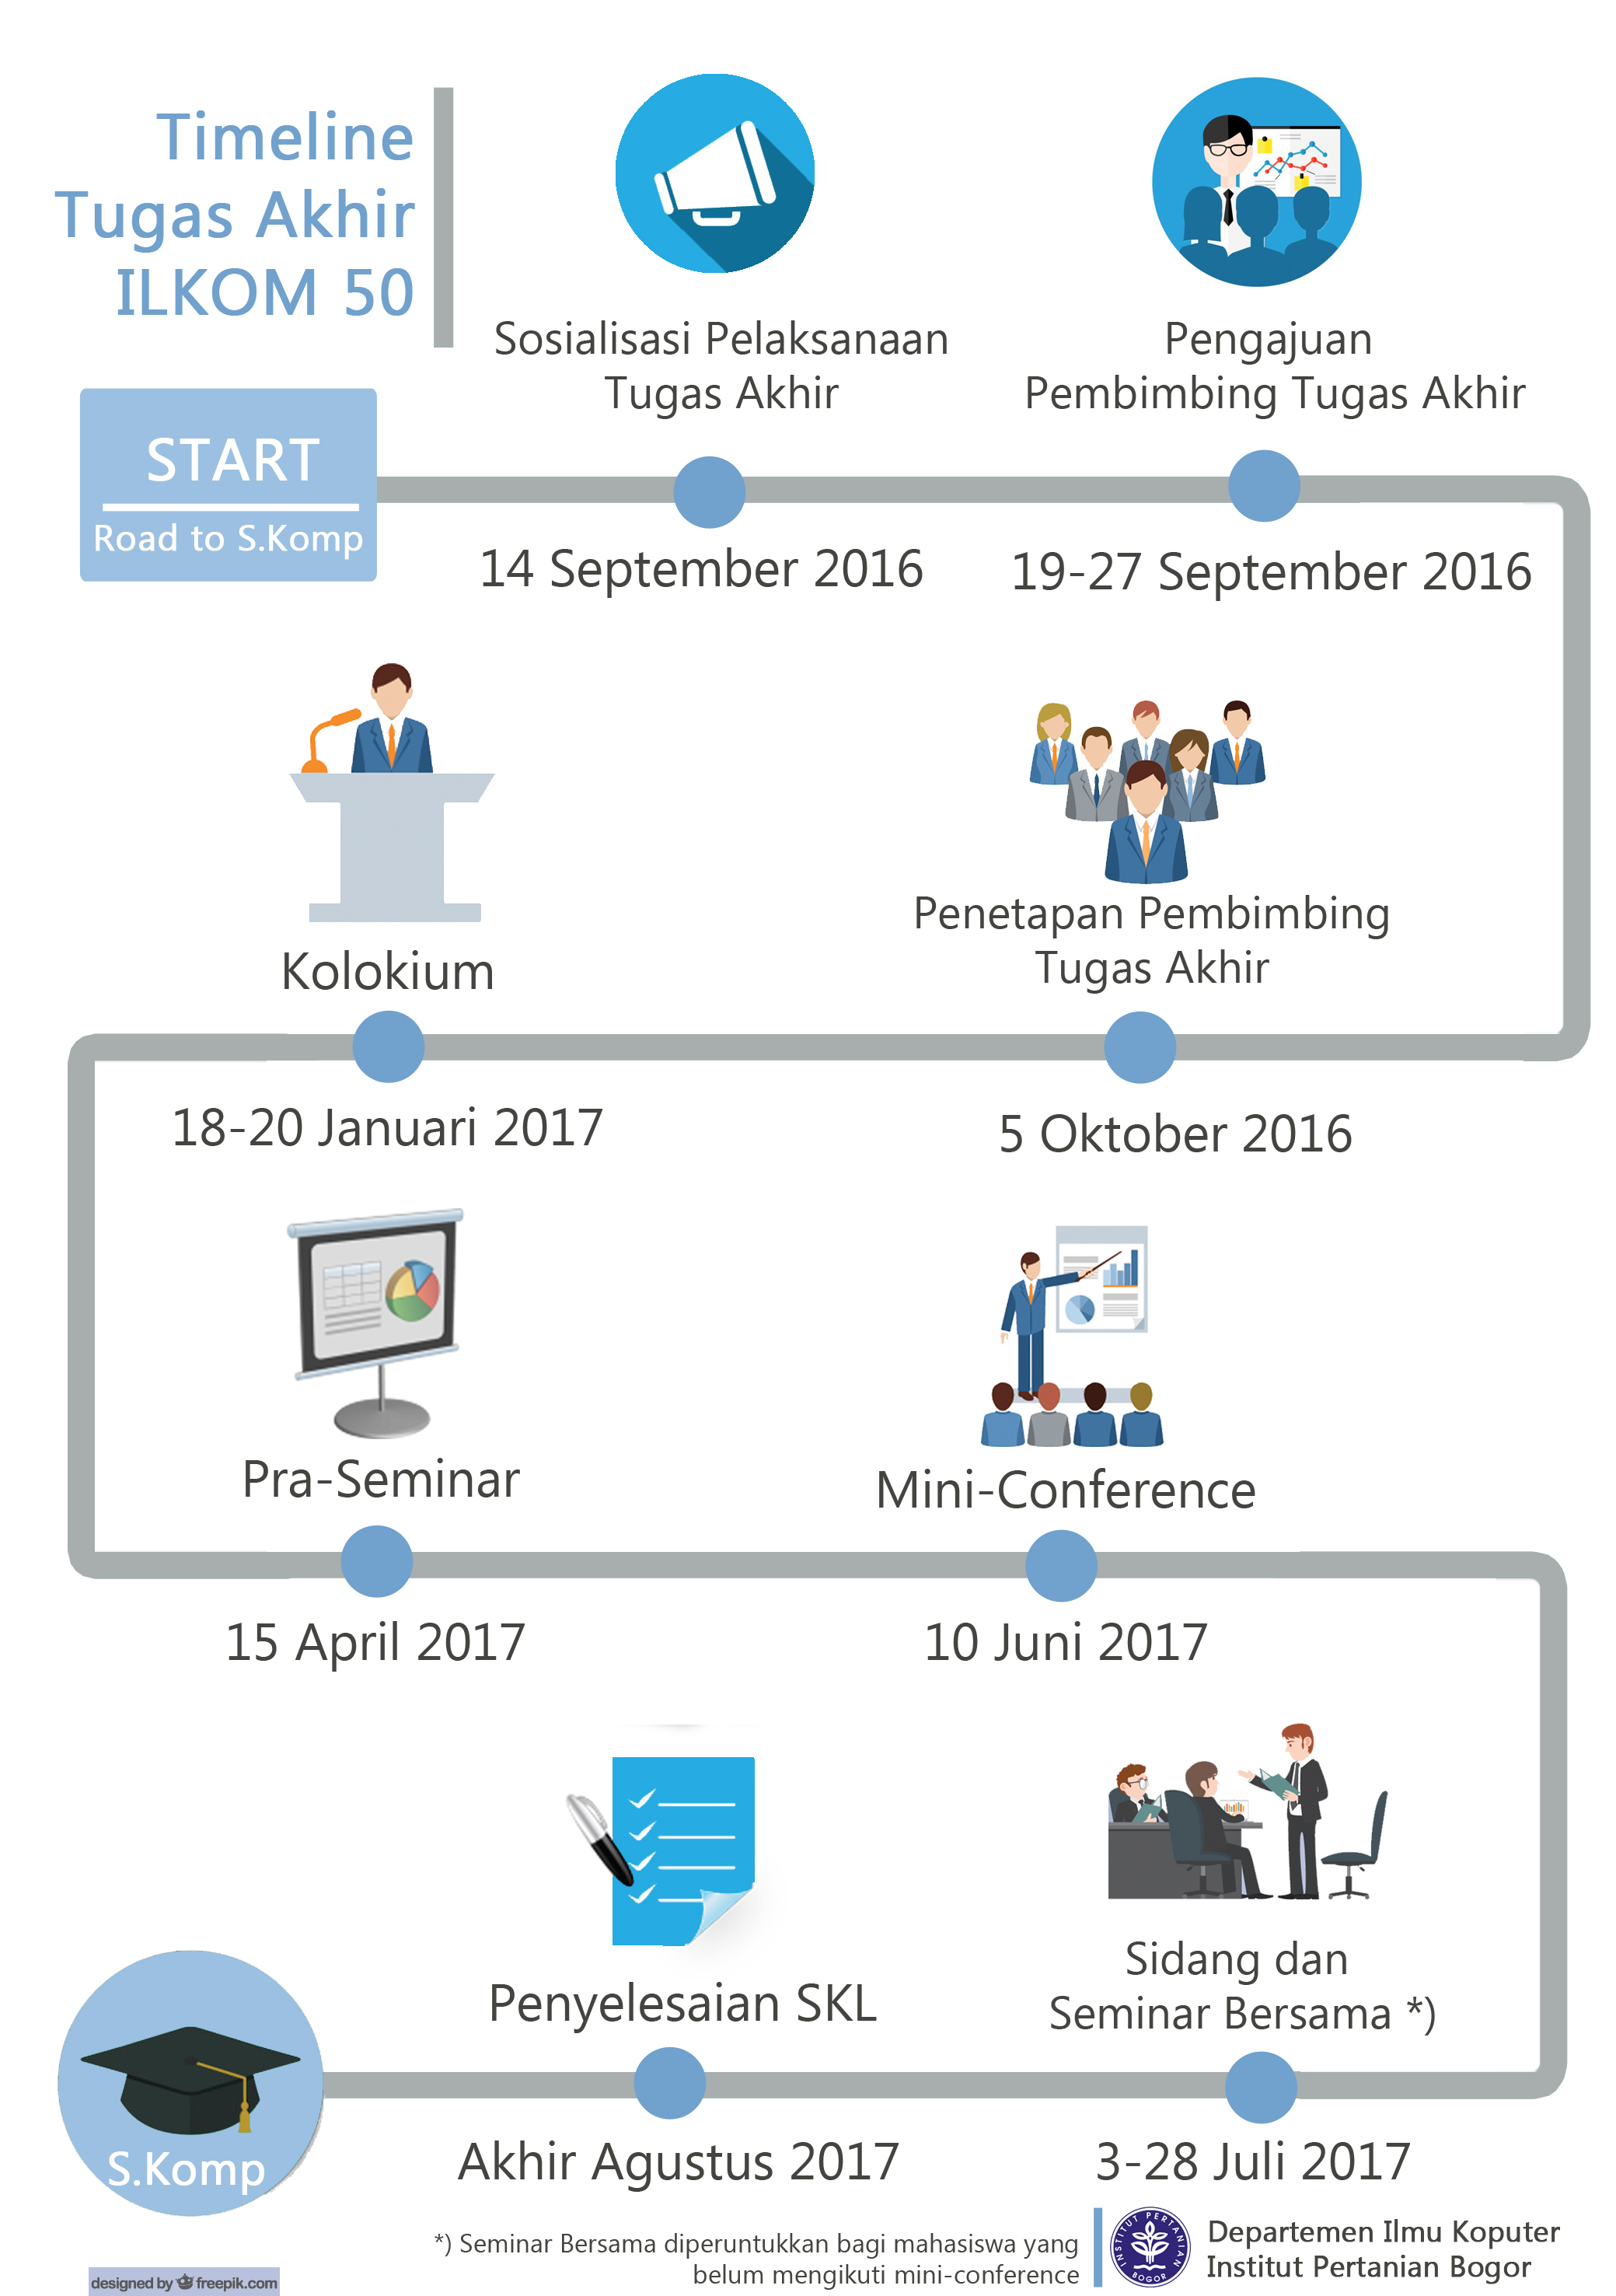 thesis_timeline 50_2016.10.05